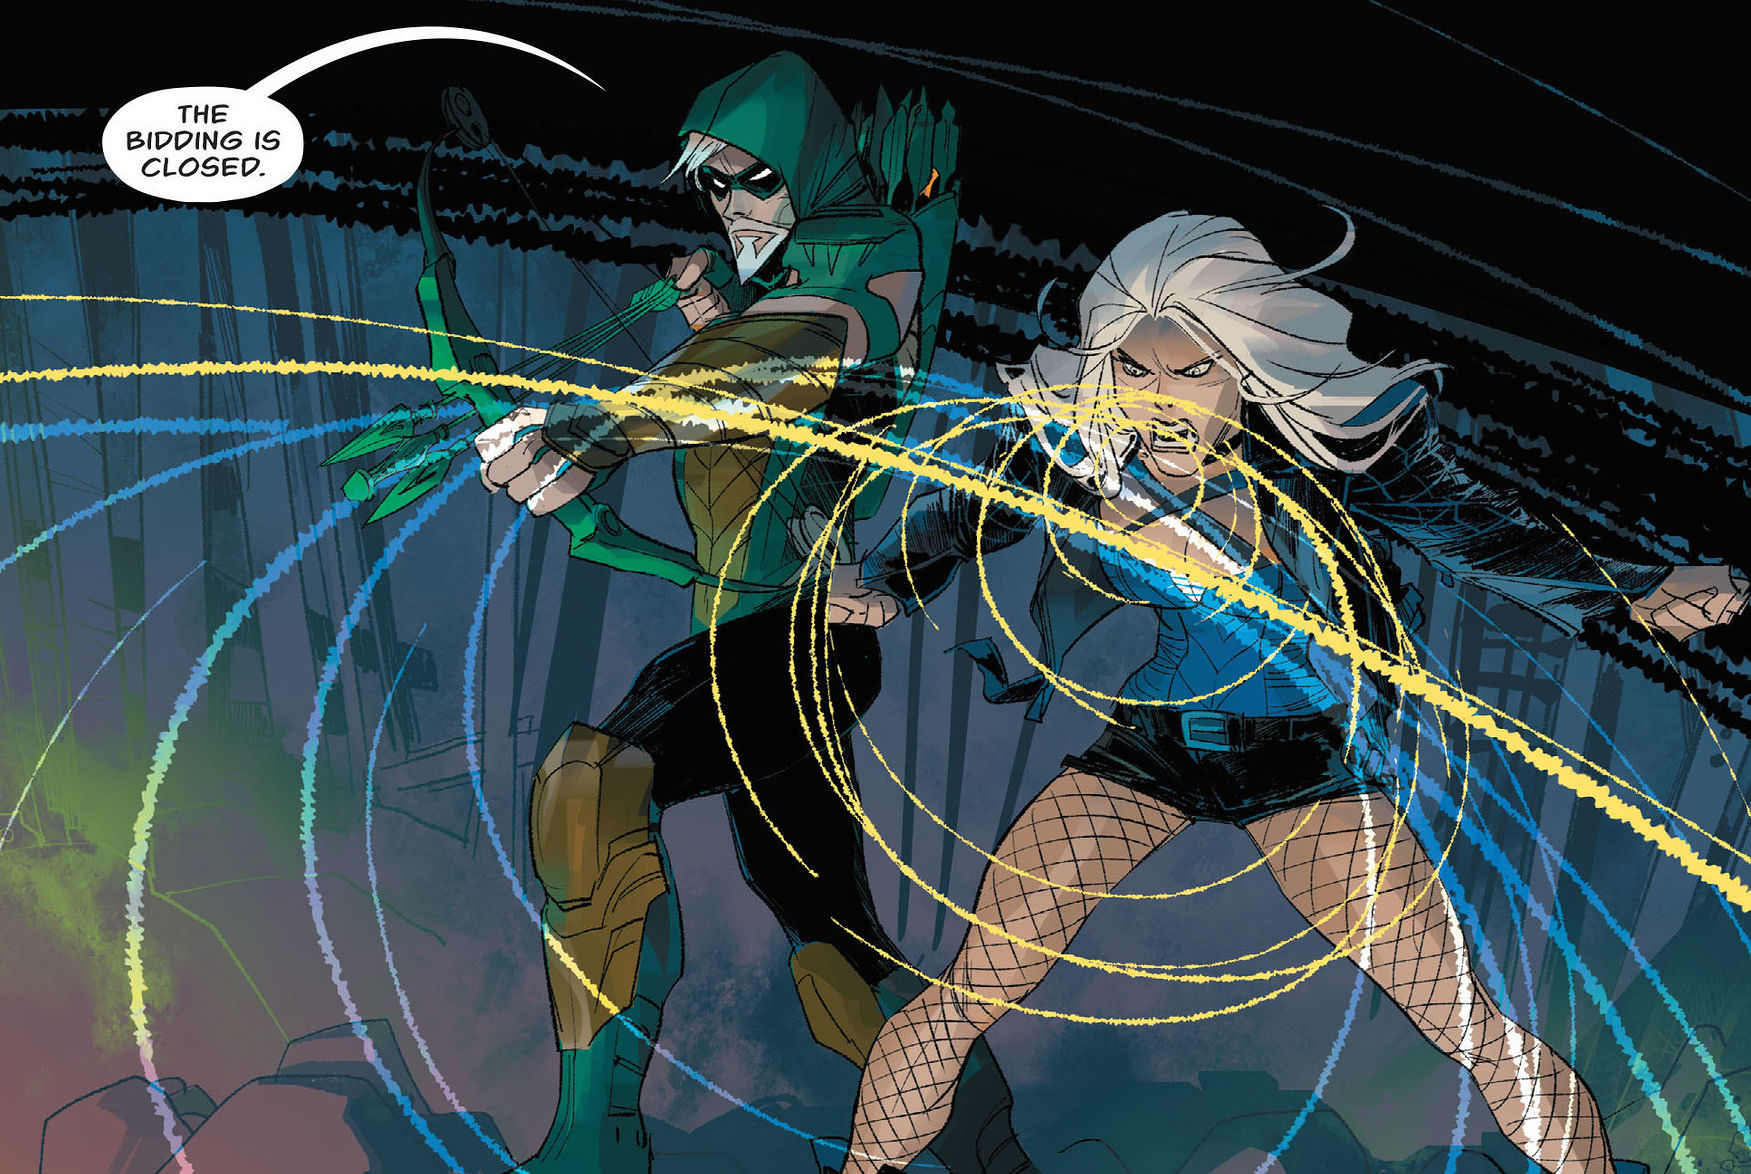 Maybe it's because I miss Laurel on the TV show now, but it's been great to see her and Oliver in action in the Rebirth comic series. They have a chemistry so far in these books that the show hasn't been able to match.